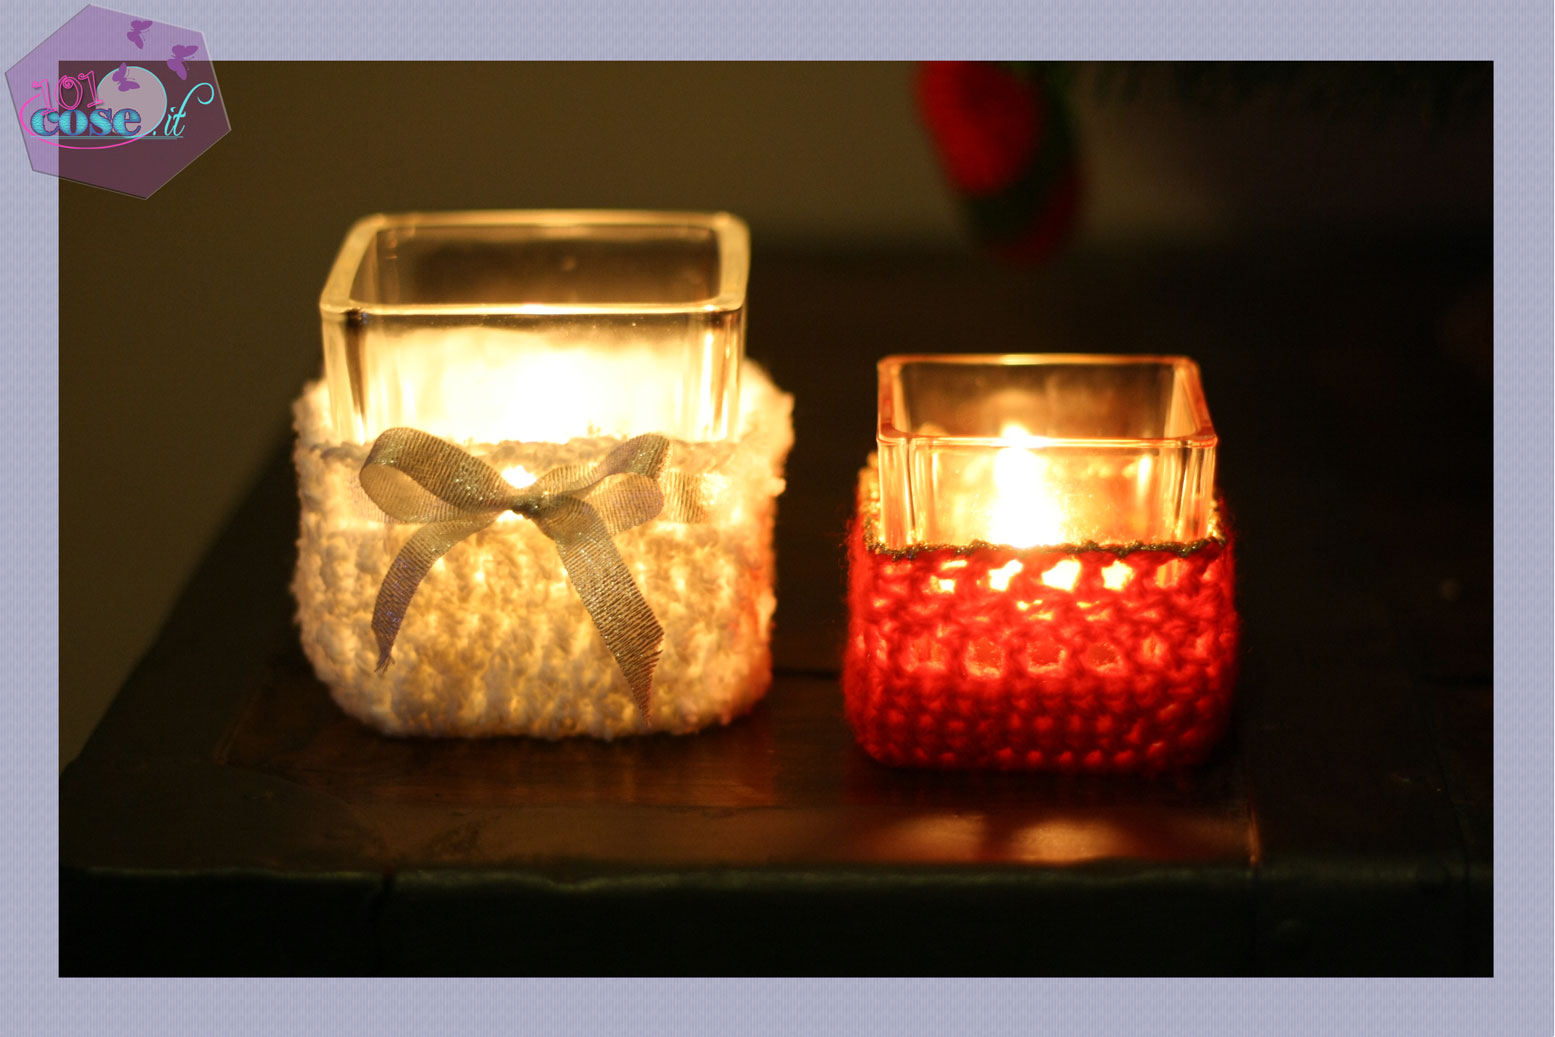 Come fare le candele di natale 101 cose - Come fare le candele in casa ...